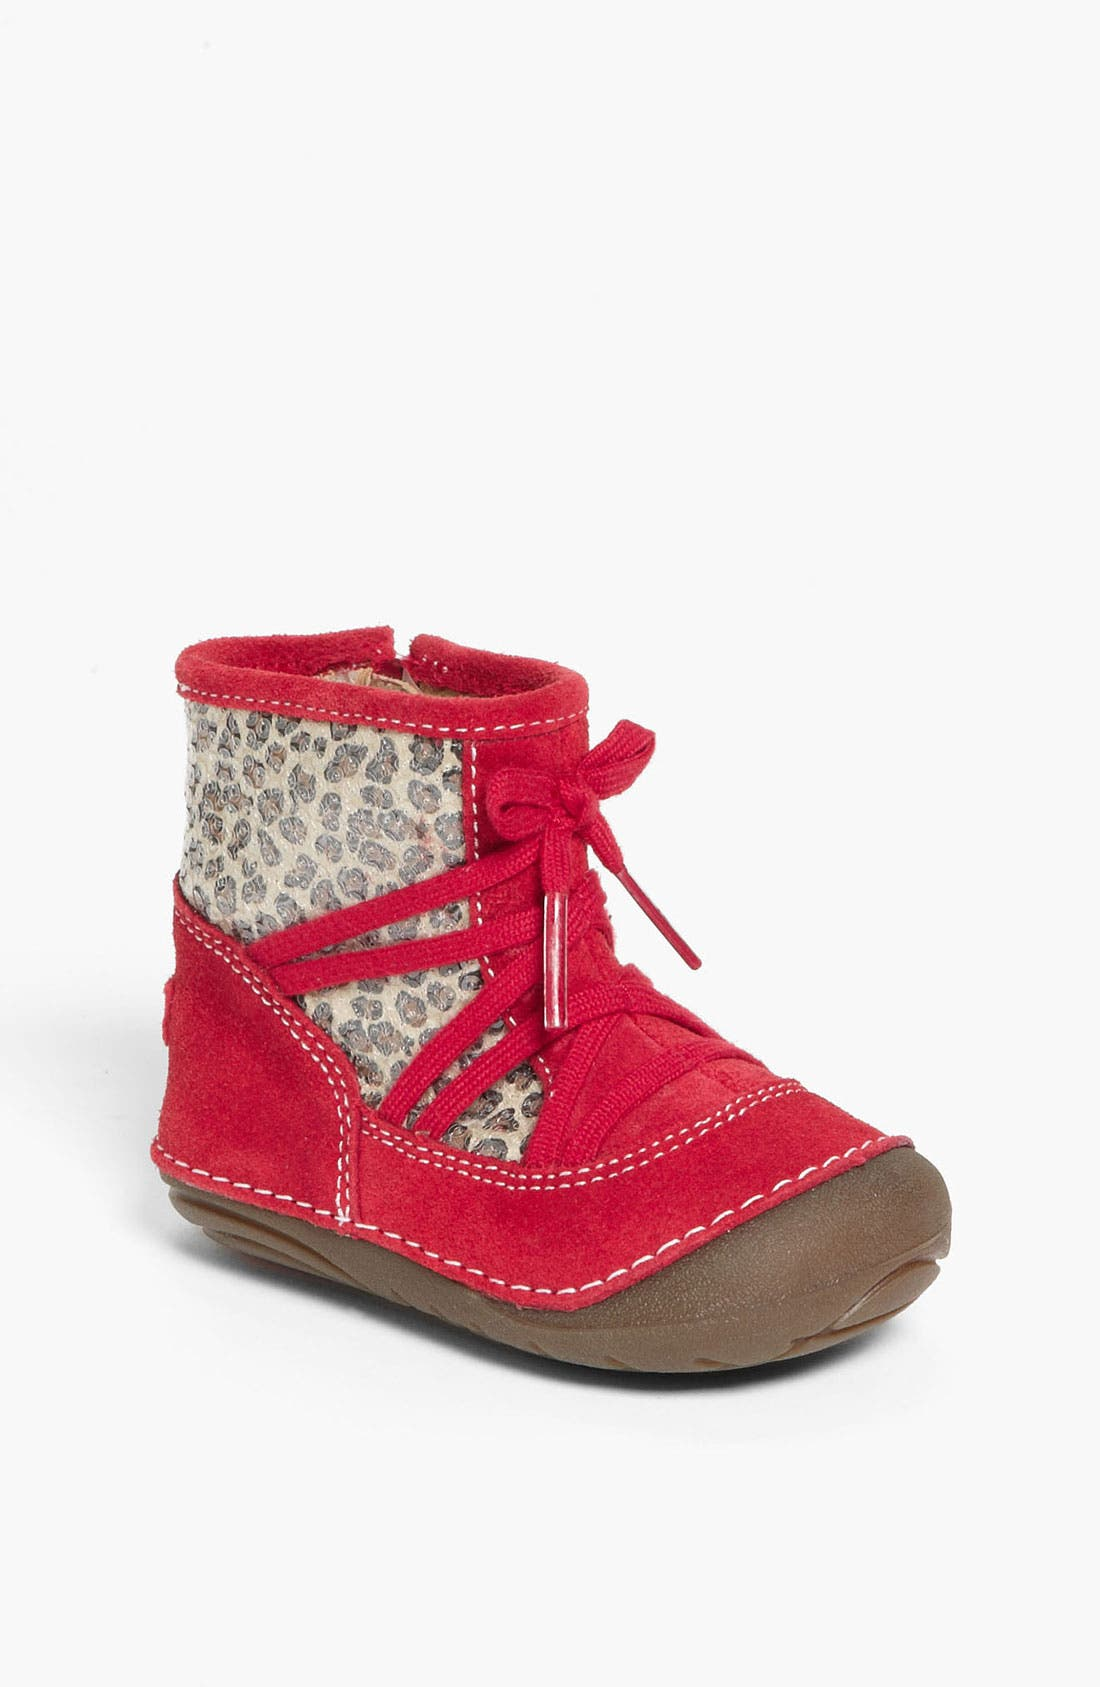 Main Image - Stride Rite 'Holly' Boot (Baby & Walker)